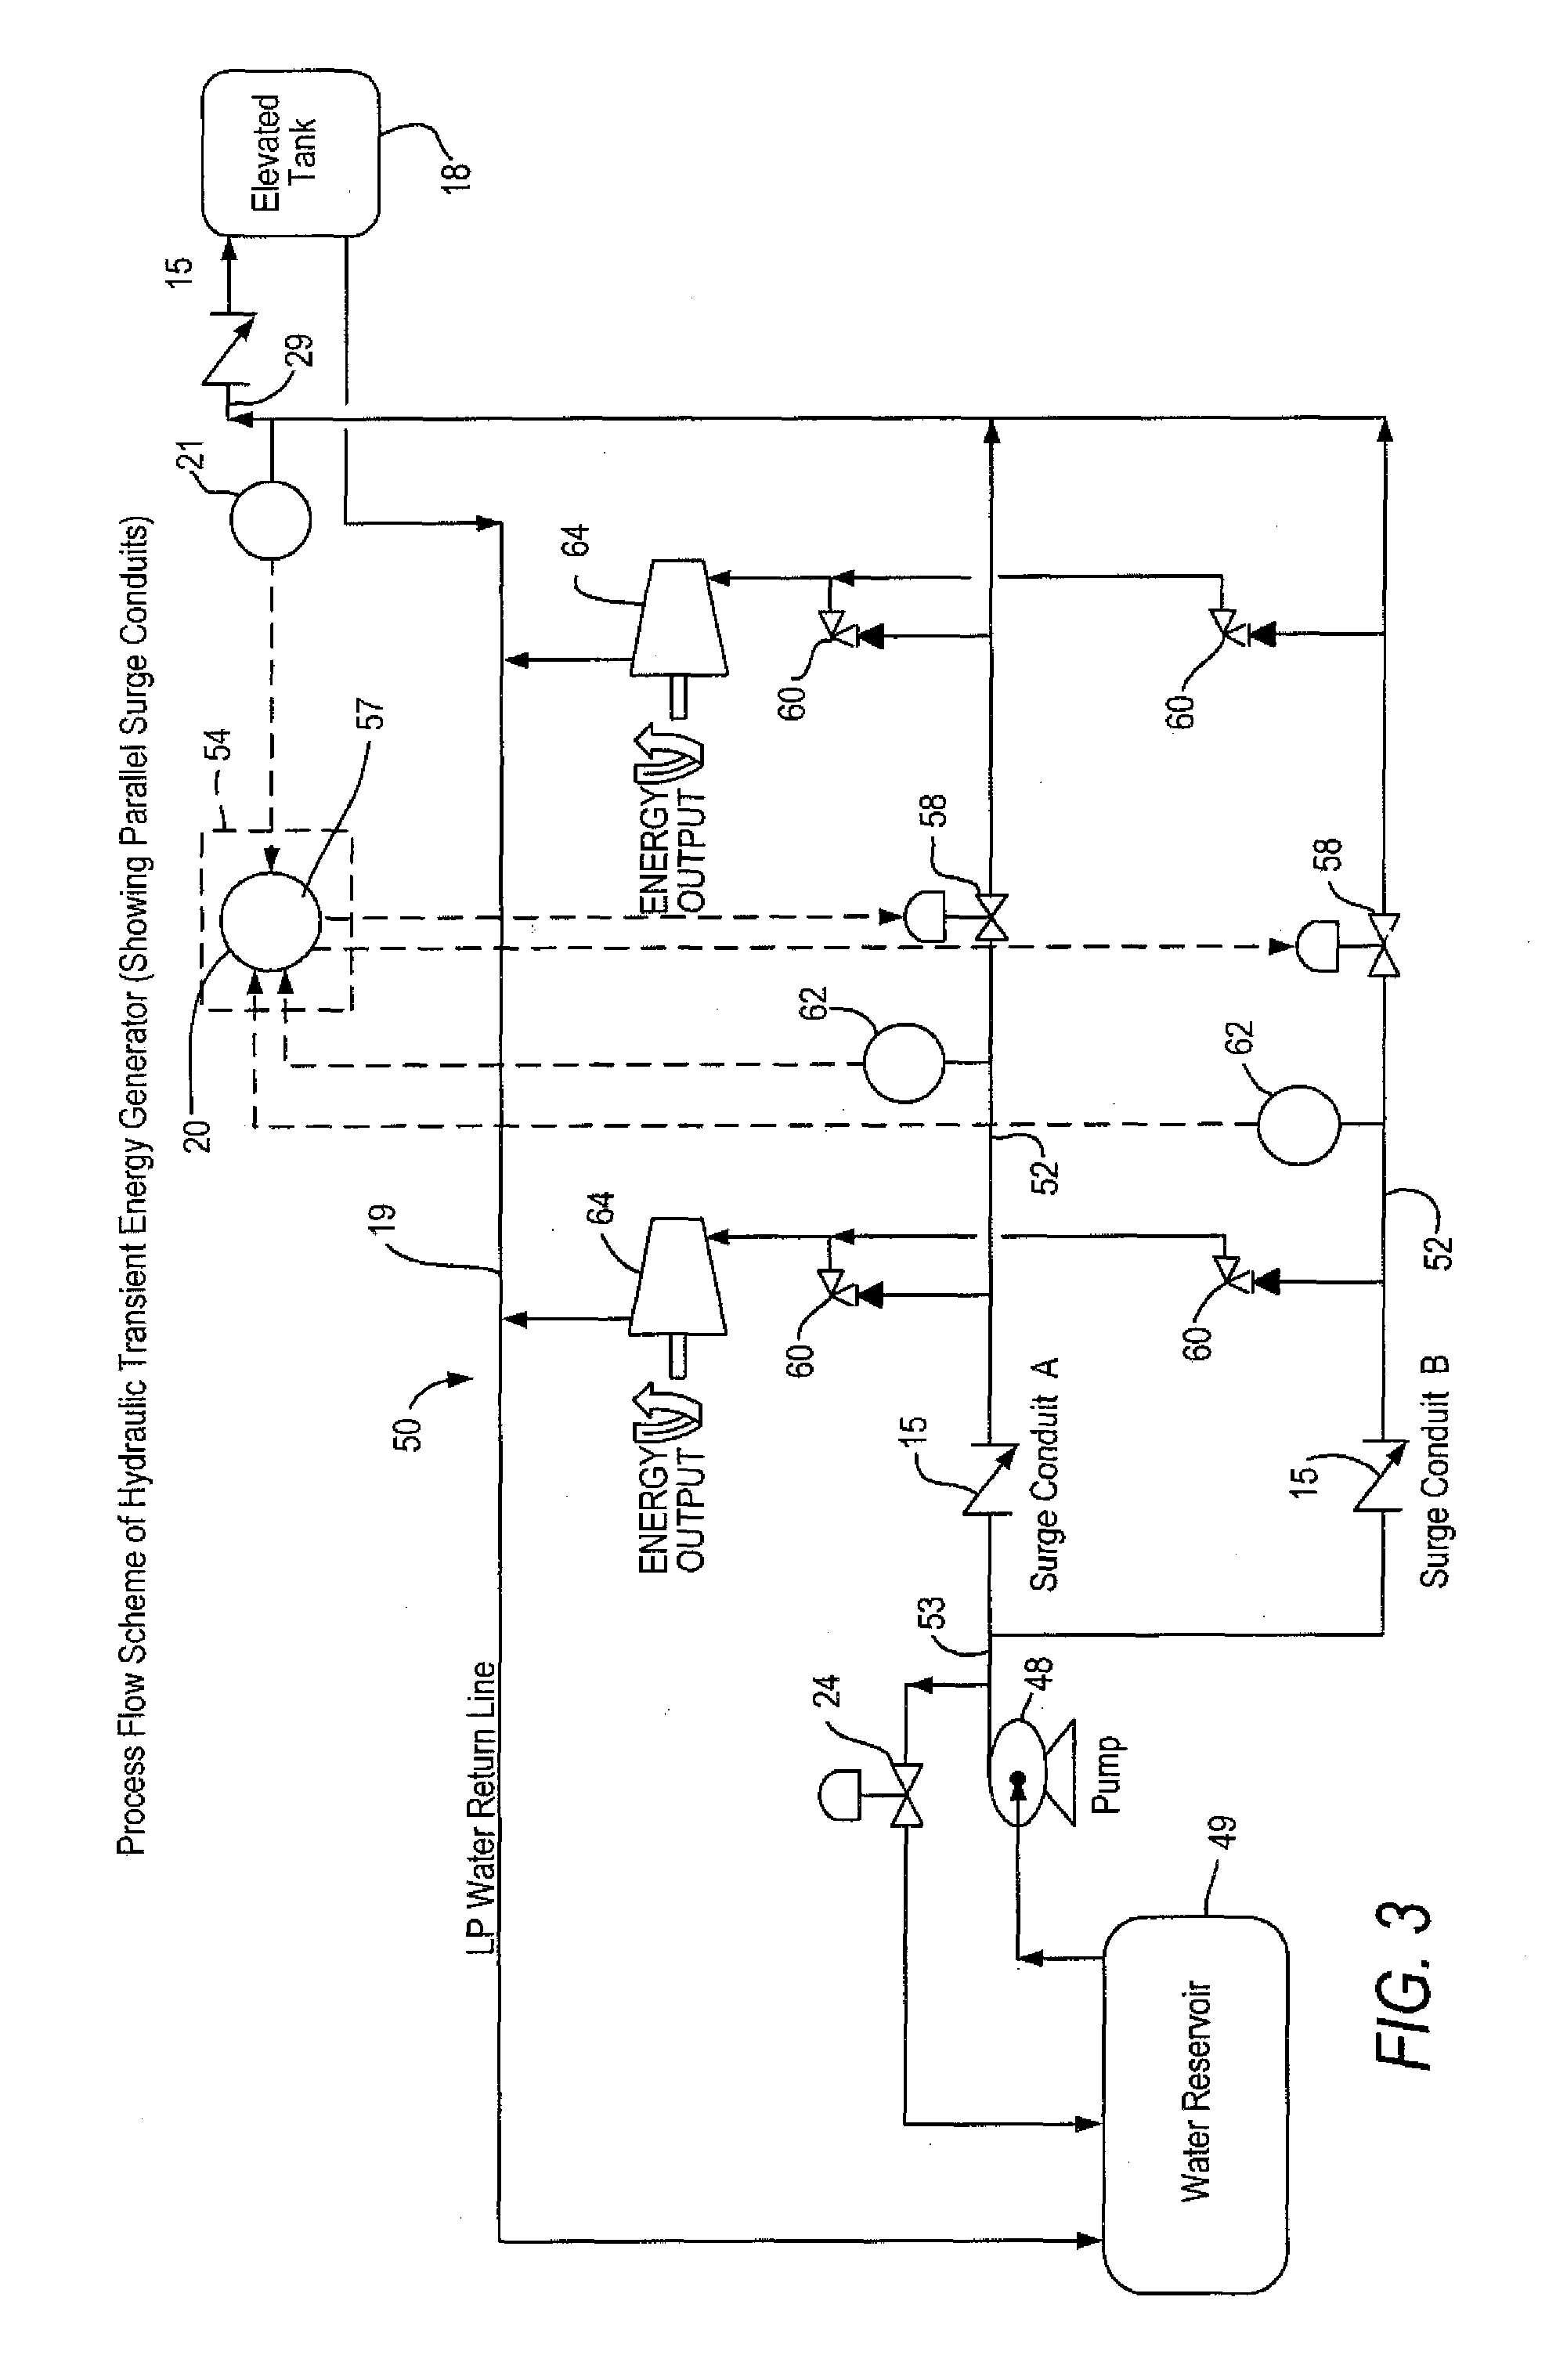 Simple Electrical Wiring Diagrams as well Stock Image Electrical Symbol Icon Set Image13236471 together with US20110318463 likewise Monolithic Isolation Joint additionally 283867582737843547. on electrical outlet drawing